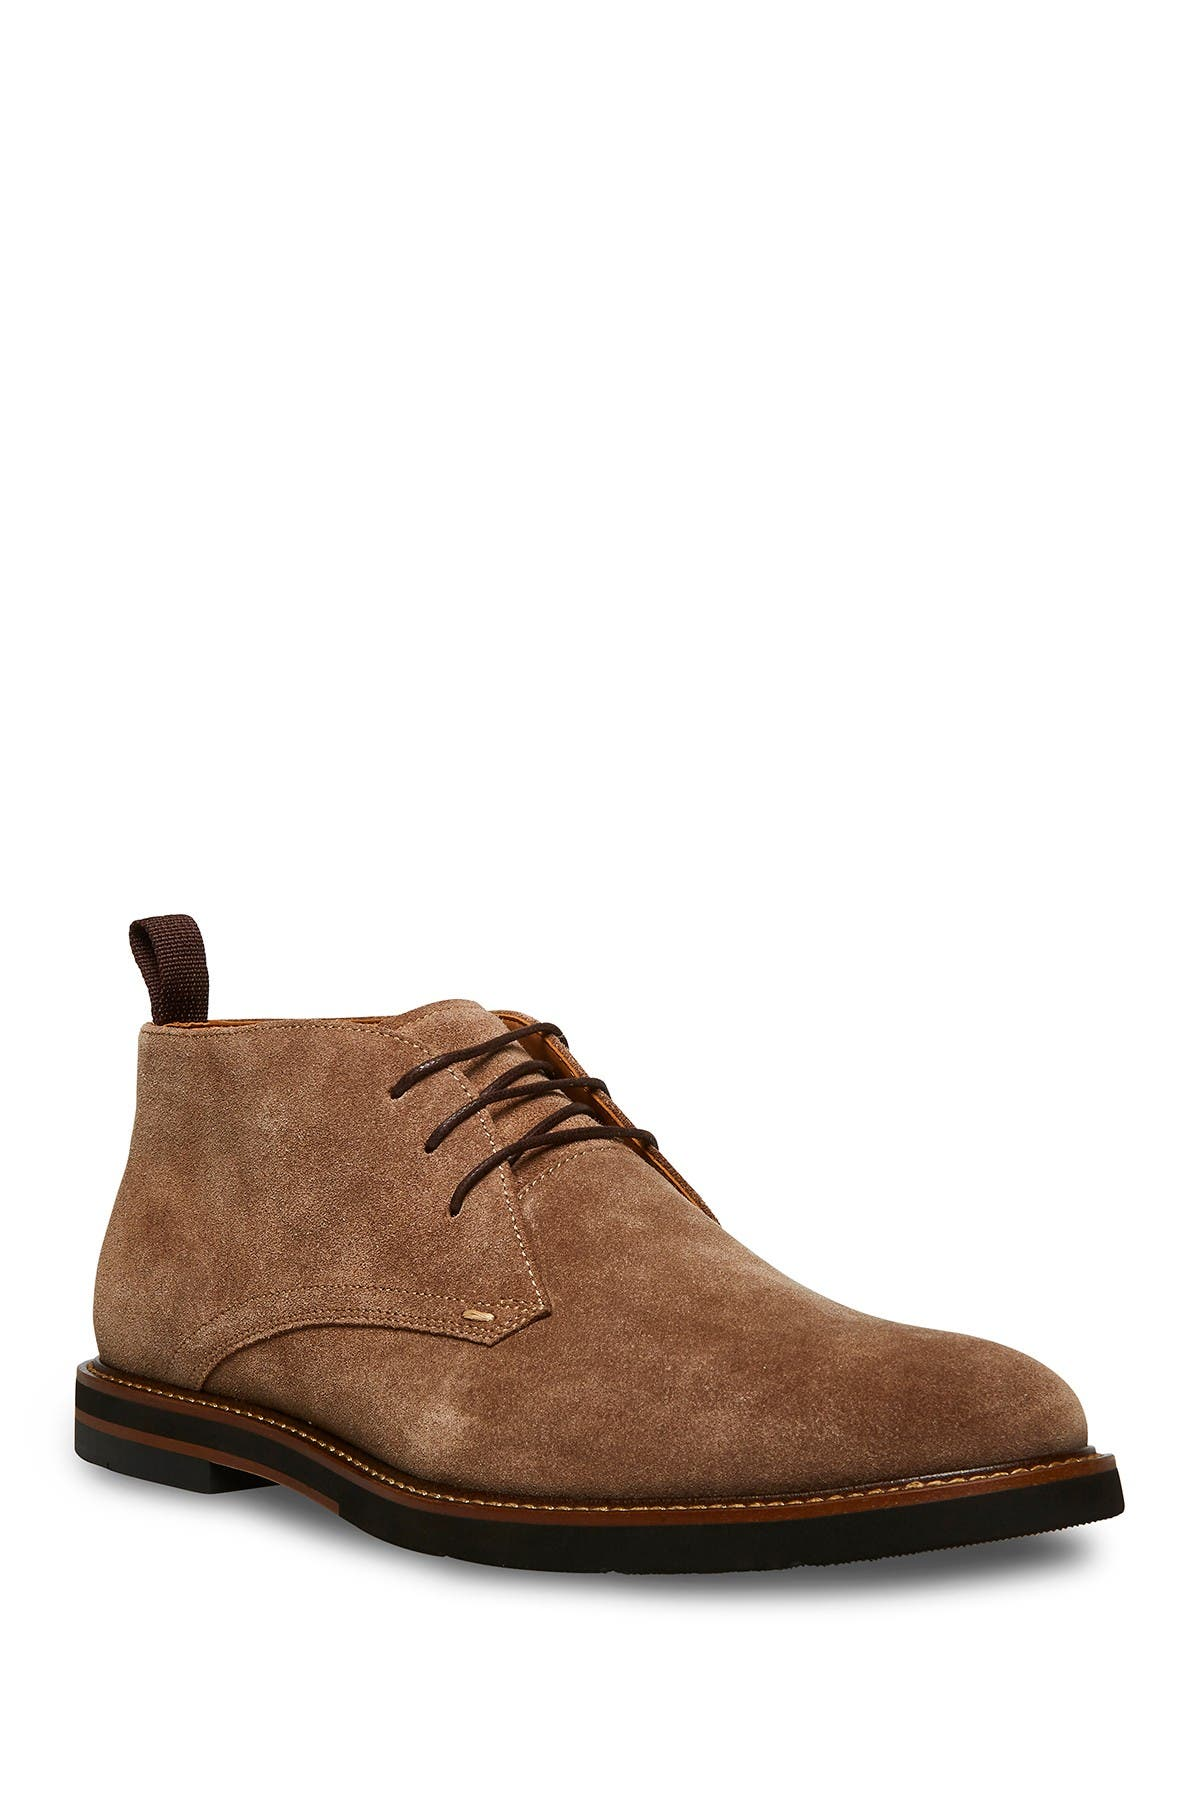 Image of Steve Madden Louie Suede Boot